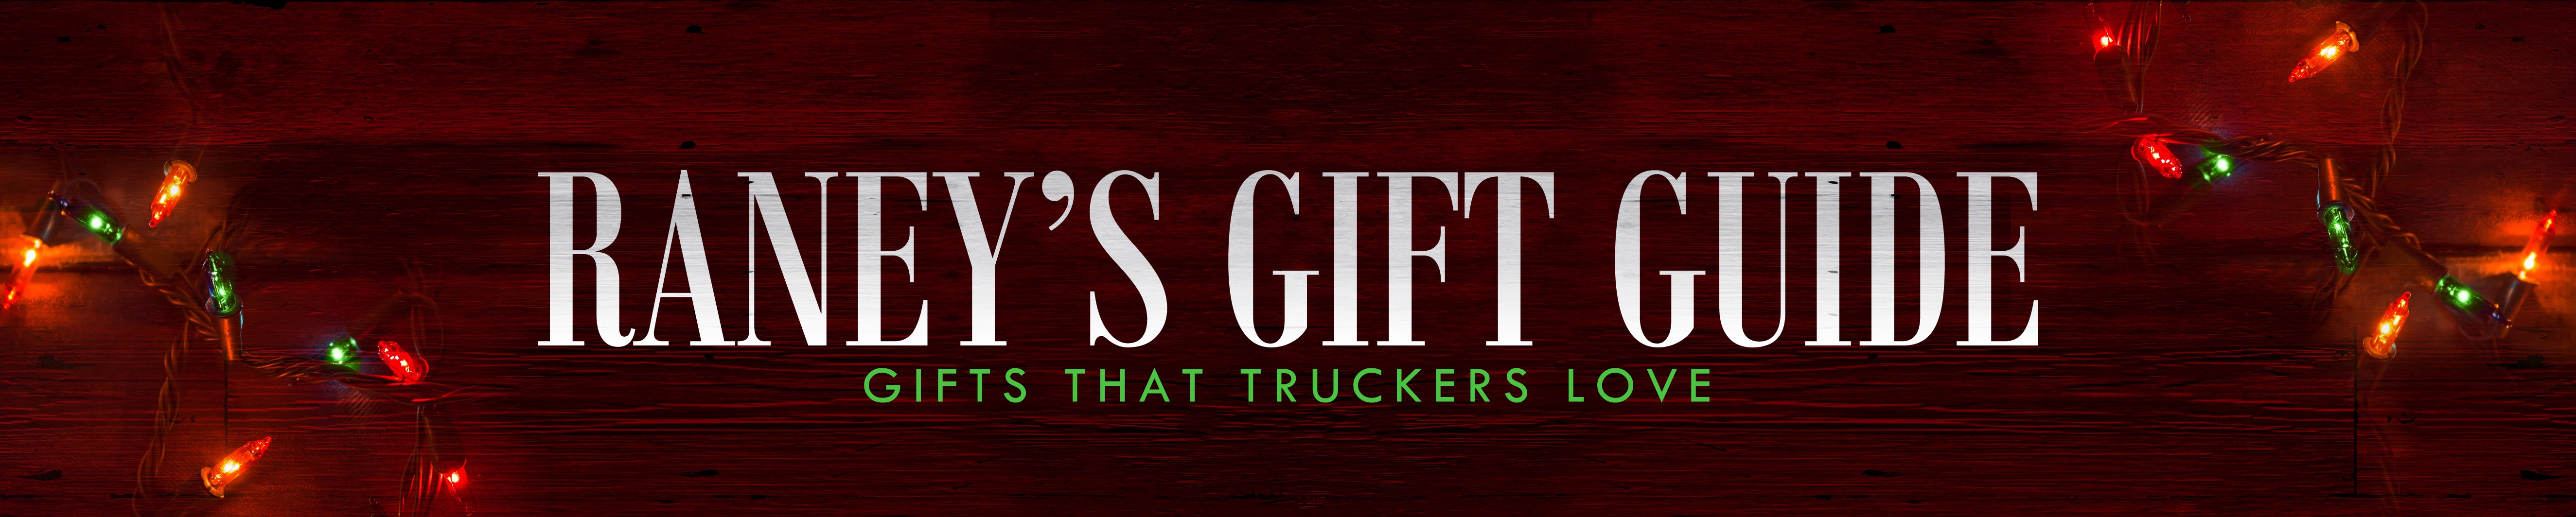 Gifts for Truckers